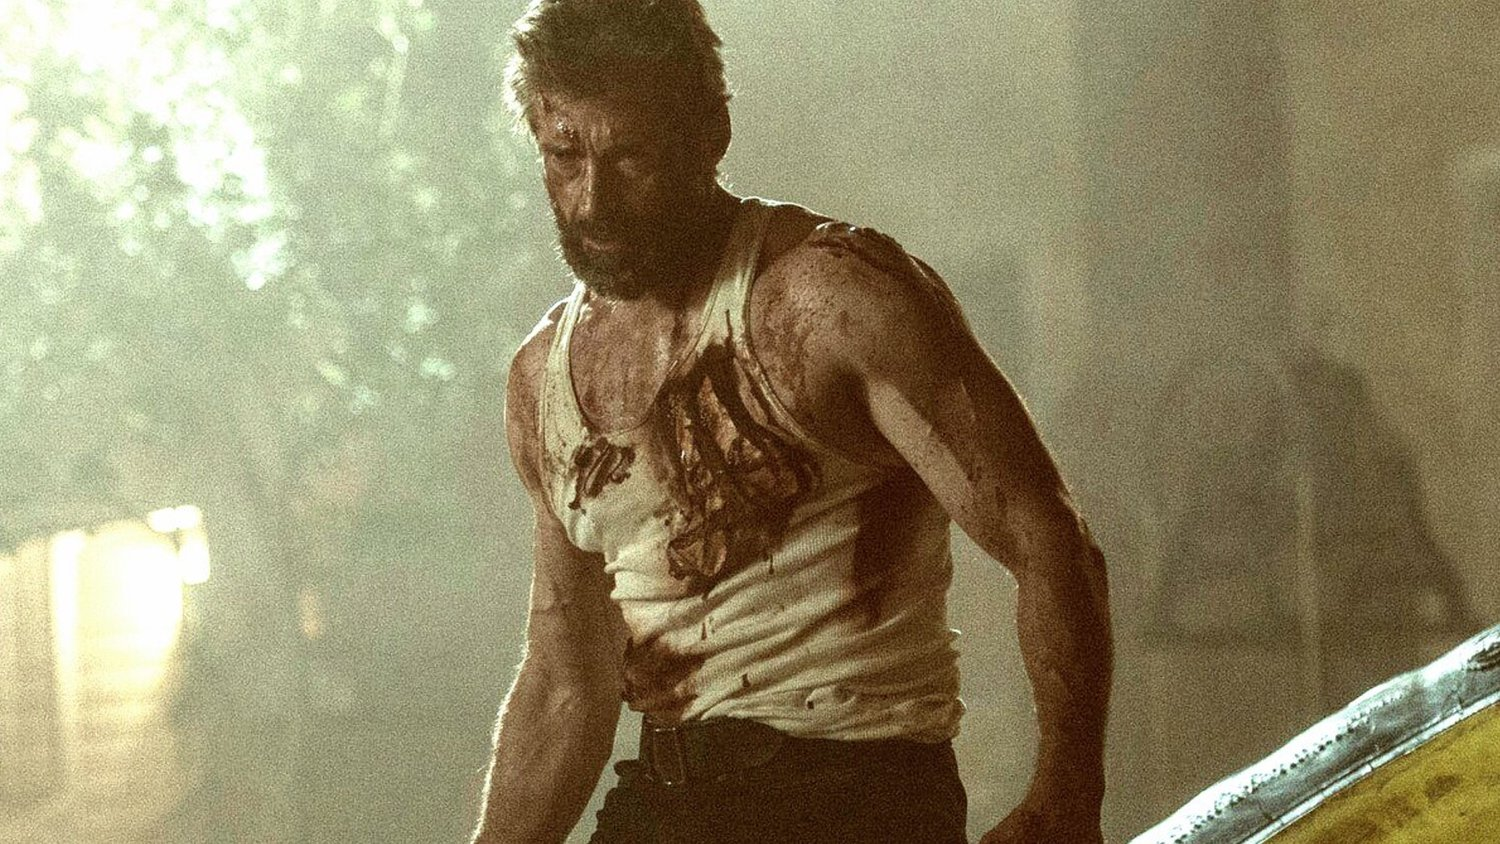 3 New Promo Spots for LOGAN Show More X-23 and Wolverine Action